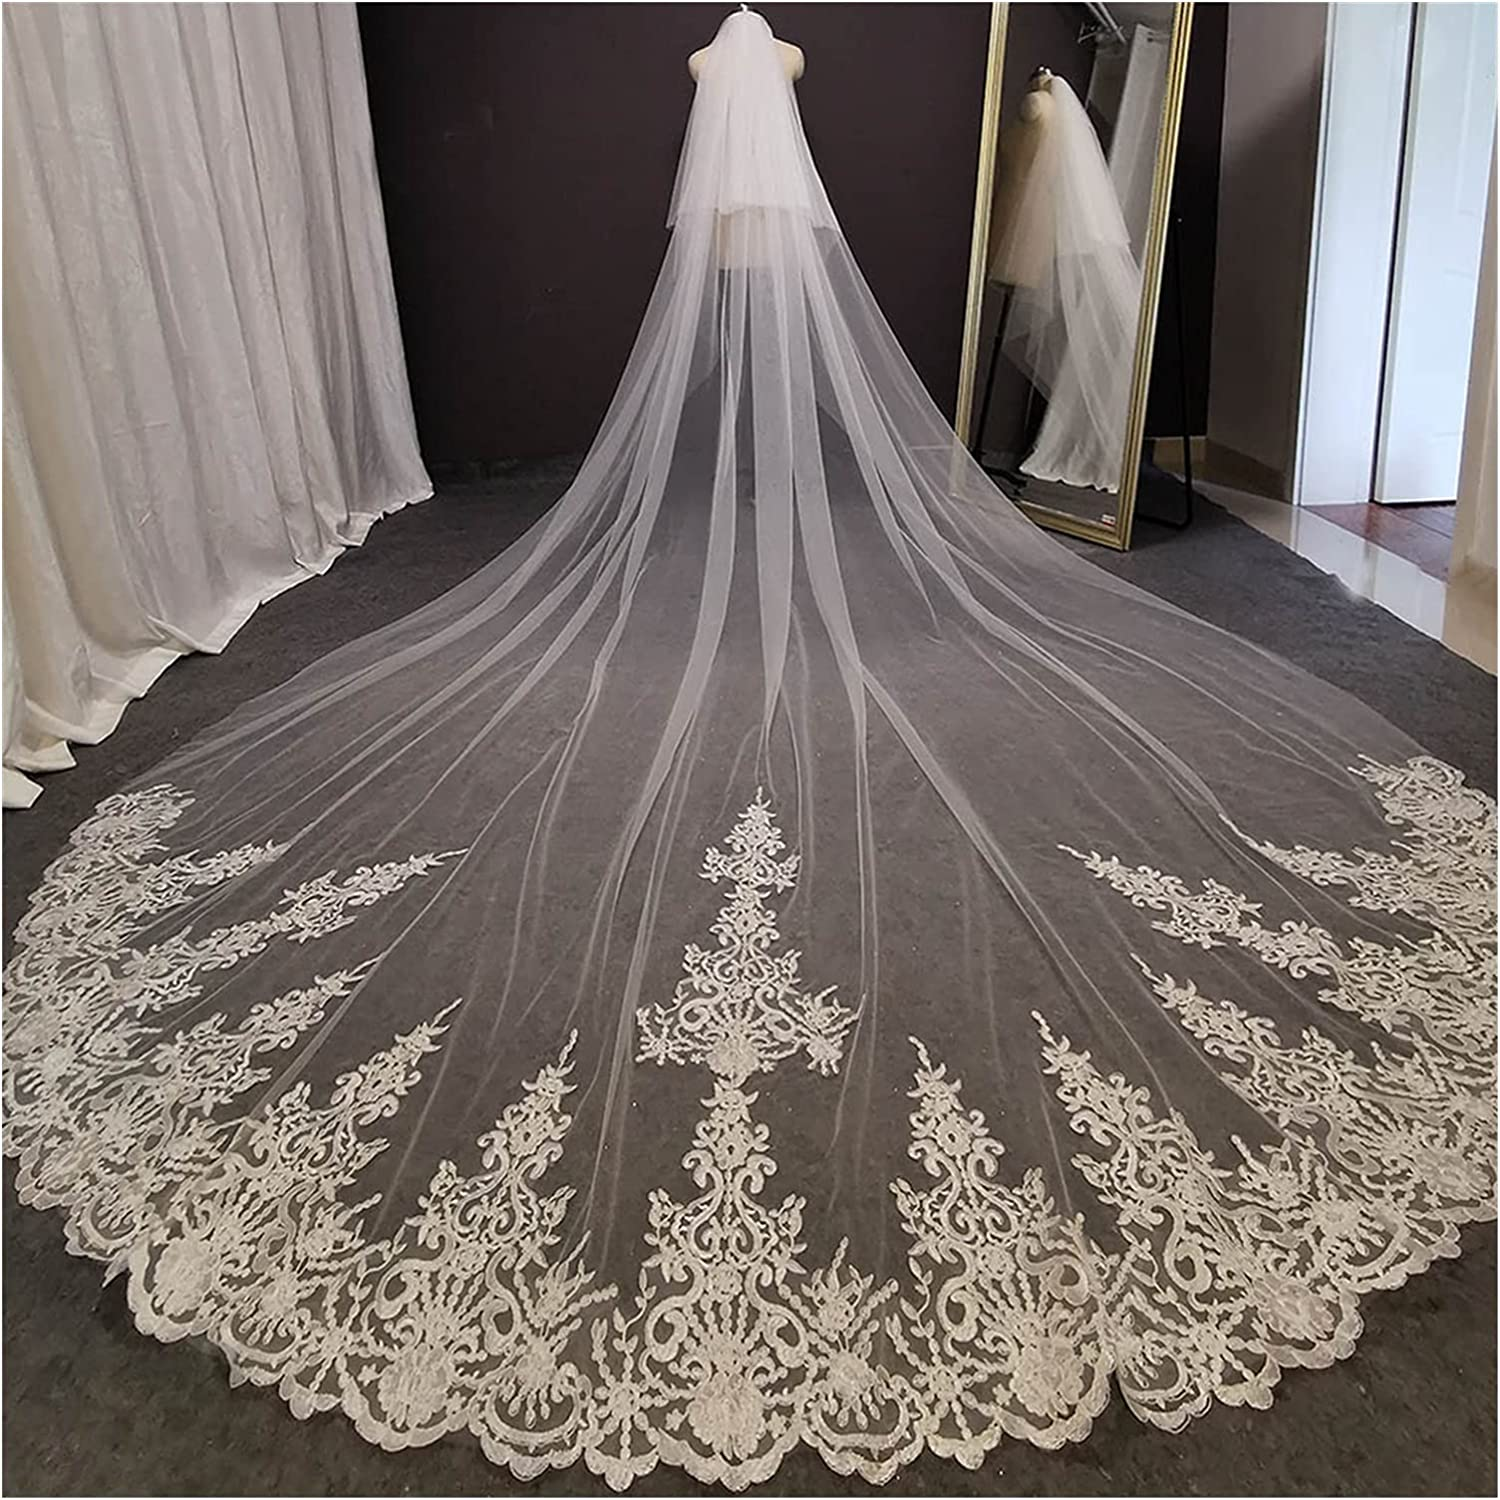 HAQTXI 2 Tier New York Mall Long Lace Our shop most popular Wedding Bridal Blush with Comb Veil